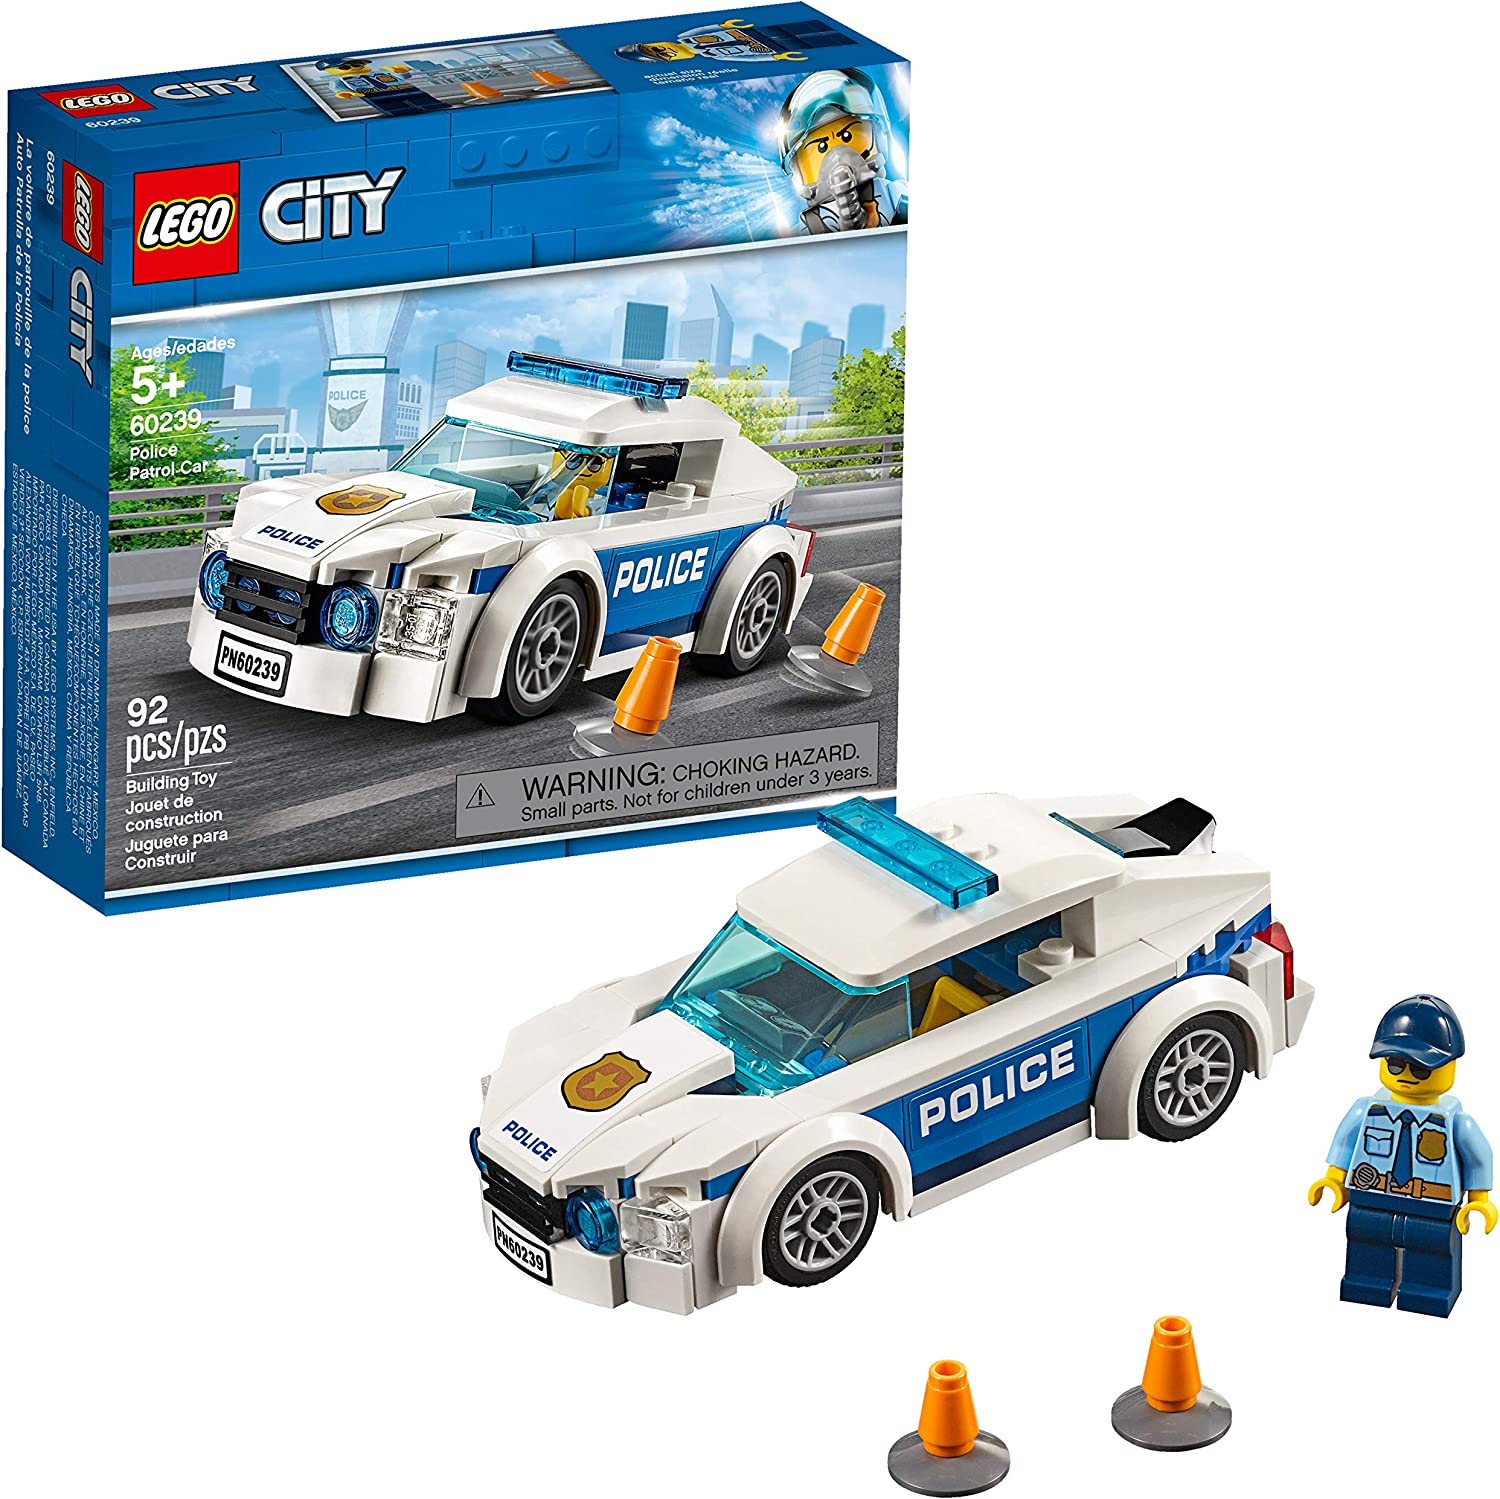 LEGO City Police Patrol Car 60239 Building Kit, 2019 (92 Pieces)